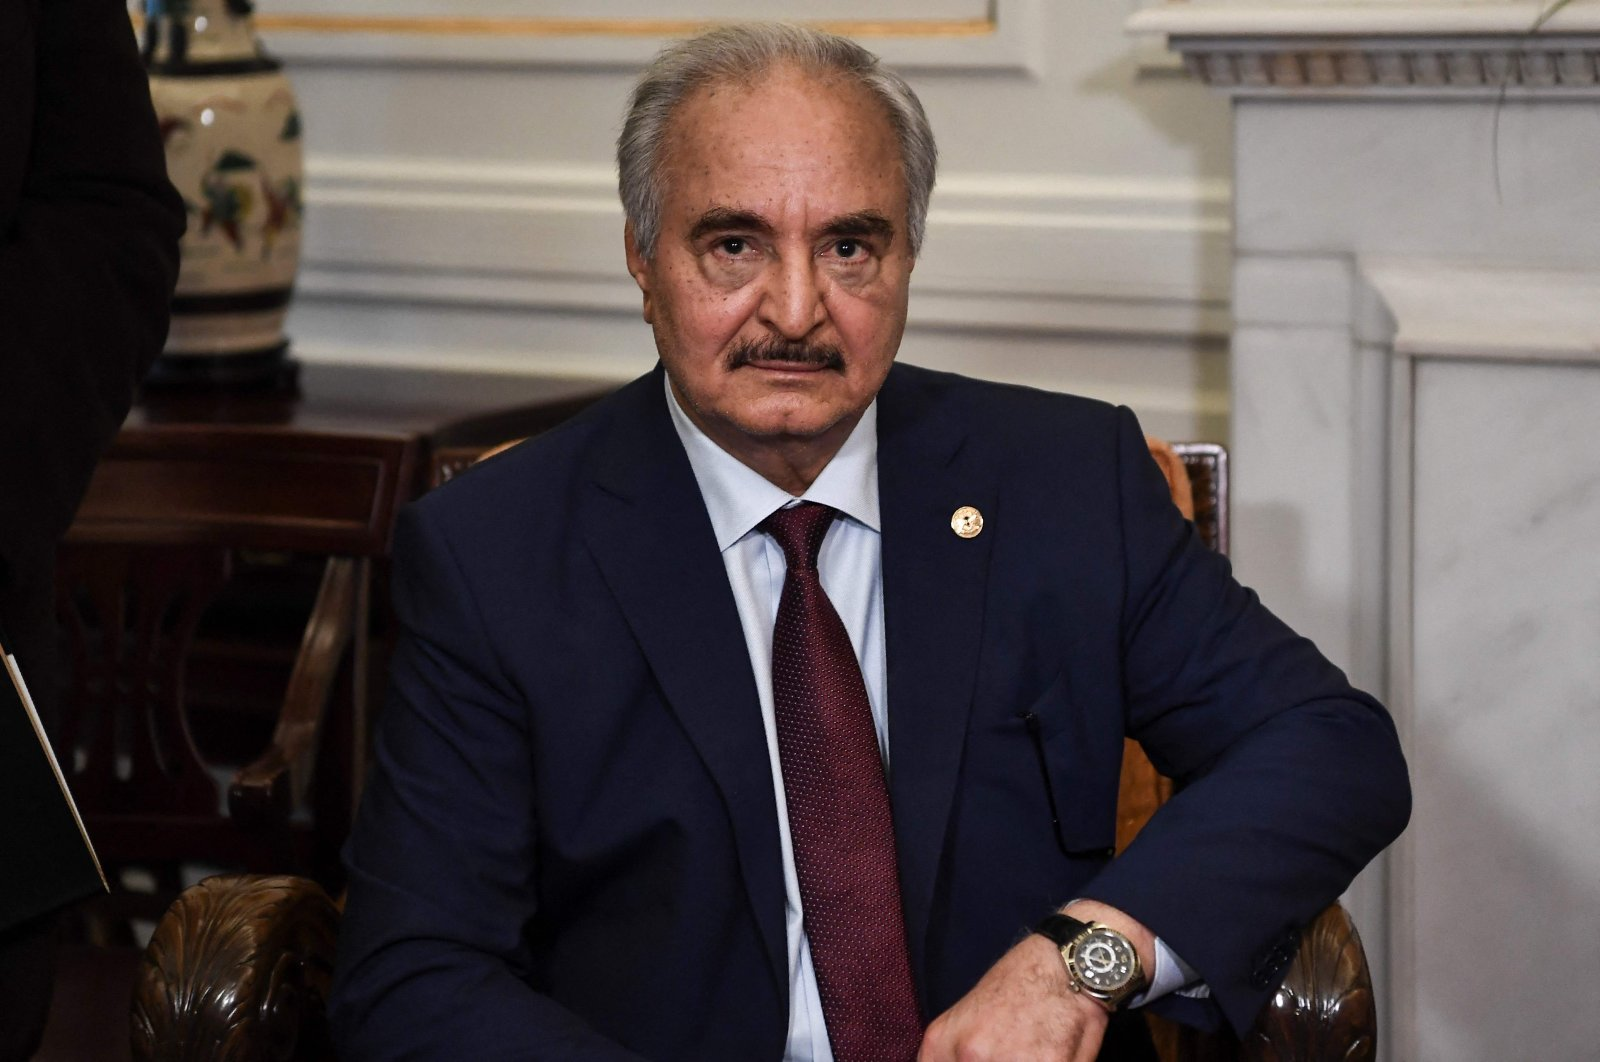 Libyan putschist Gen. Khalifa Haftar sits during talks with Greek foreign minister (unseen) in Athens, days ahead of a peace conference in Berlin, Germany, Jan. 17, 2020,  (AFP Photo)